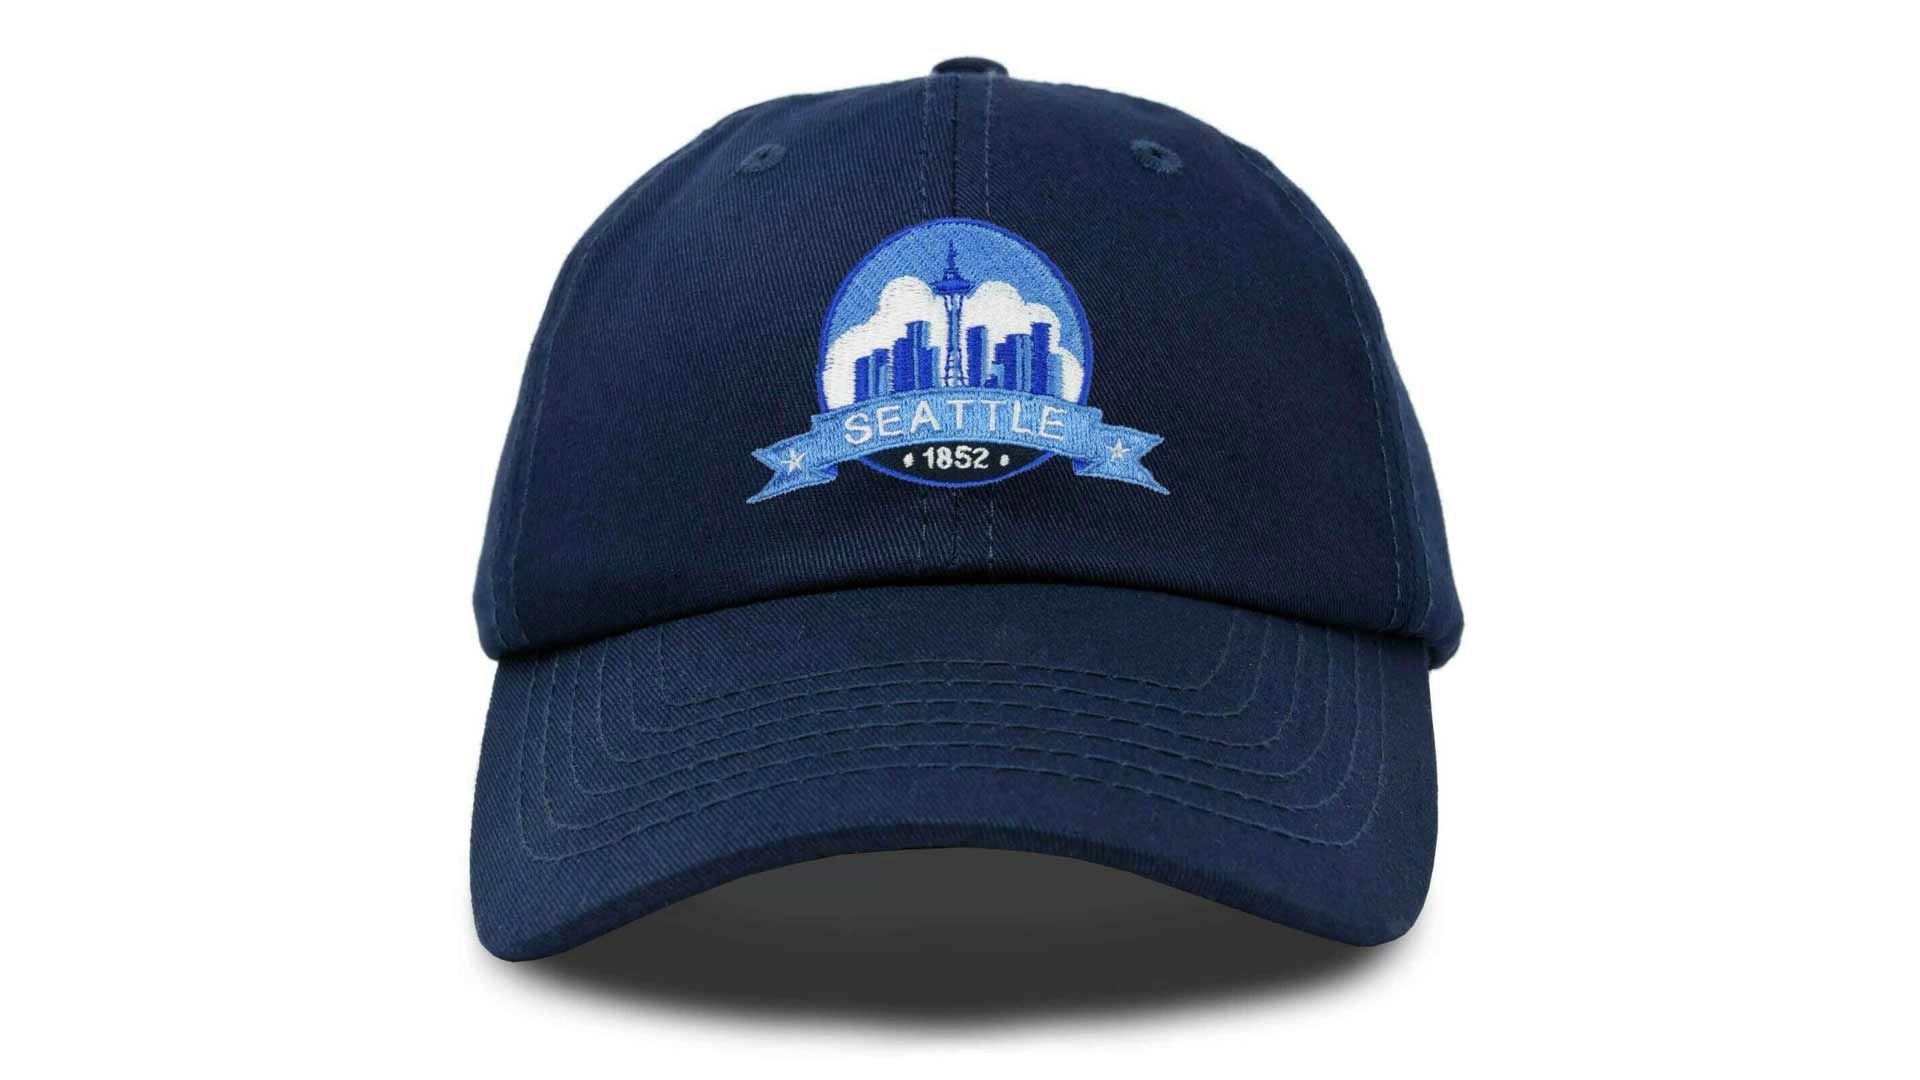 Seattle Cap Embroidery Video Cap Embroidery Seattle Video Embroidery Videos Logo Design Trends Fashion Logo Design